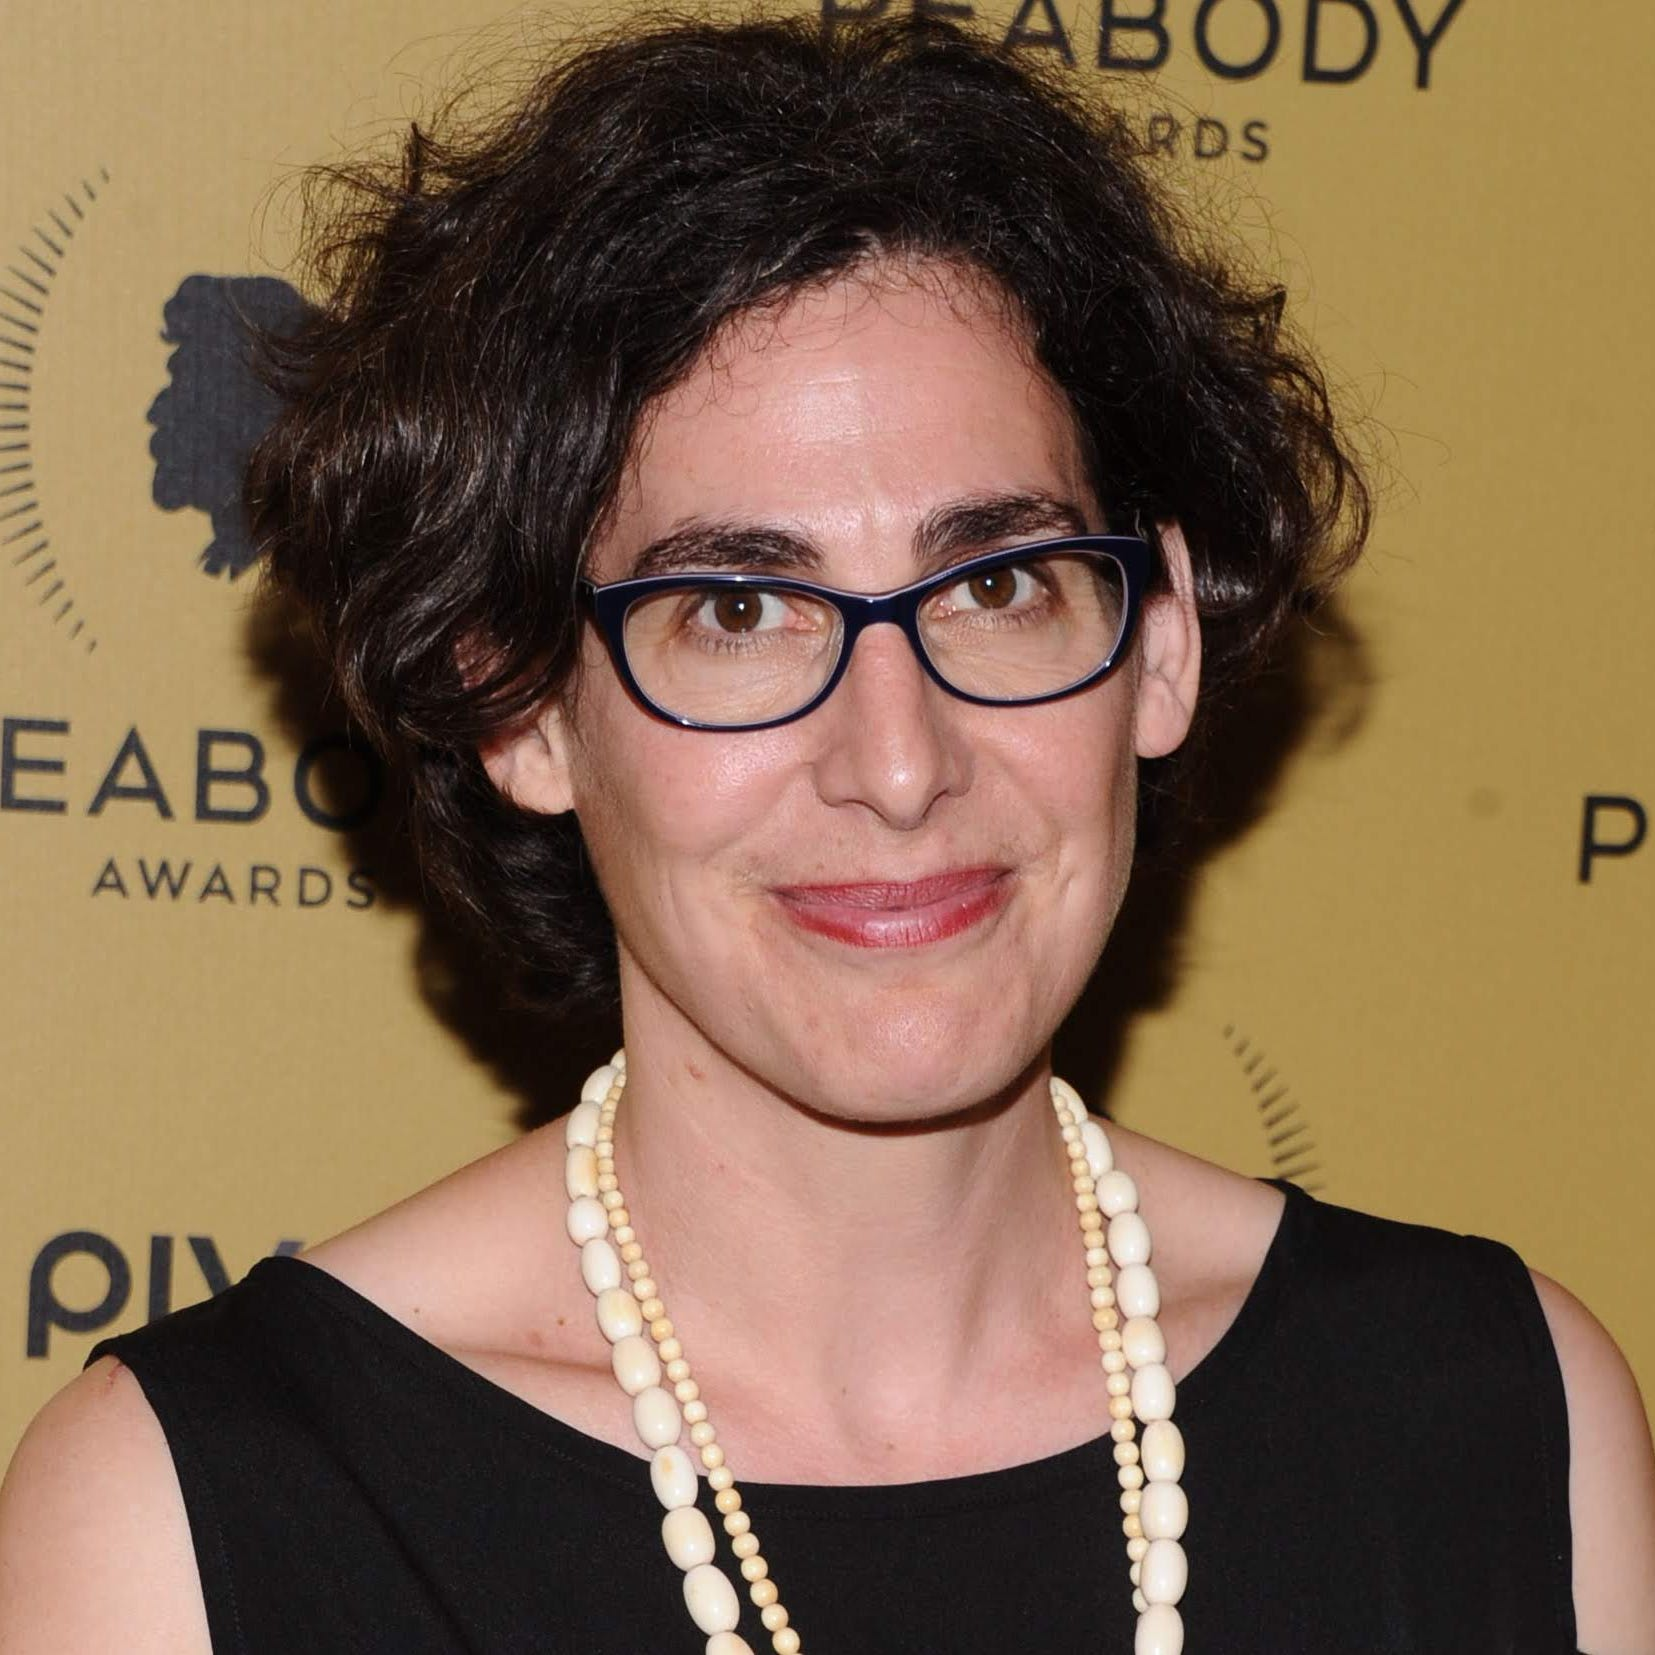 'Serial' podcast host Sarah Koenig will visit Indianapolis as part of WFYI speaker series